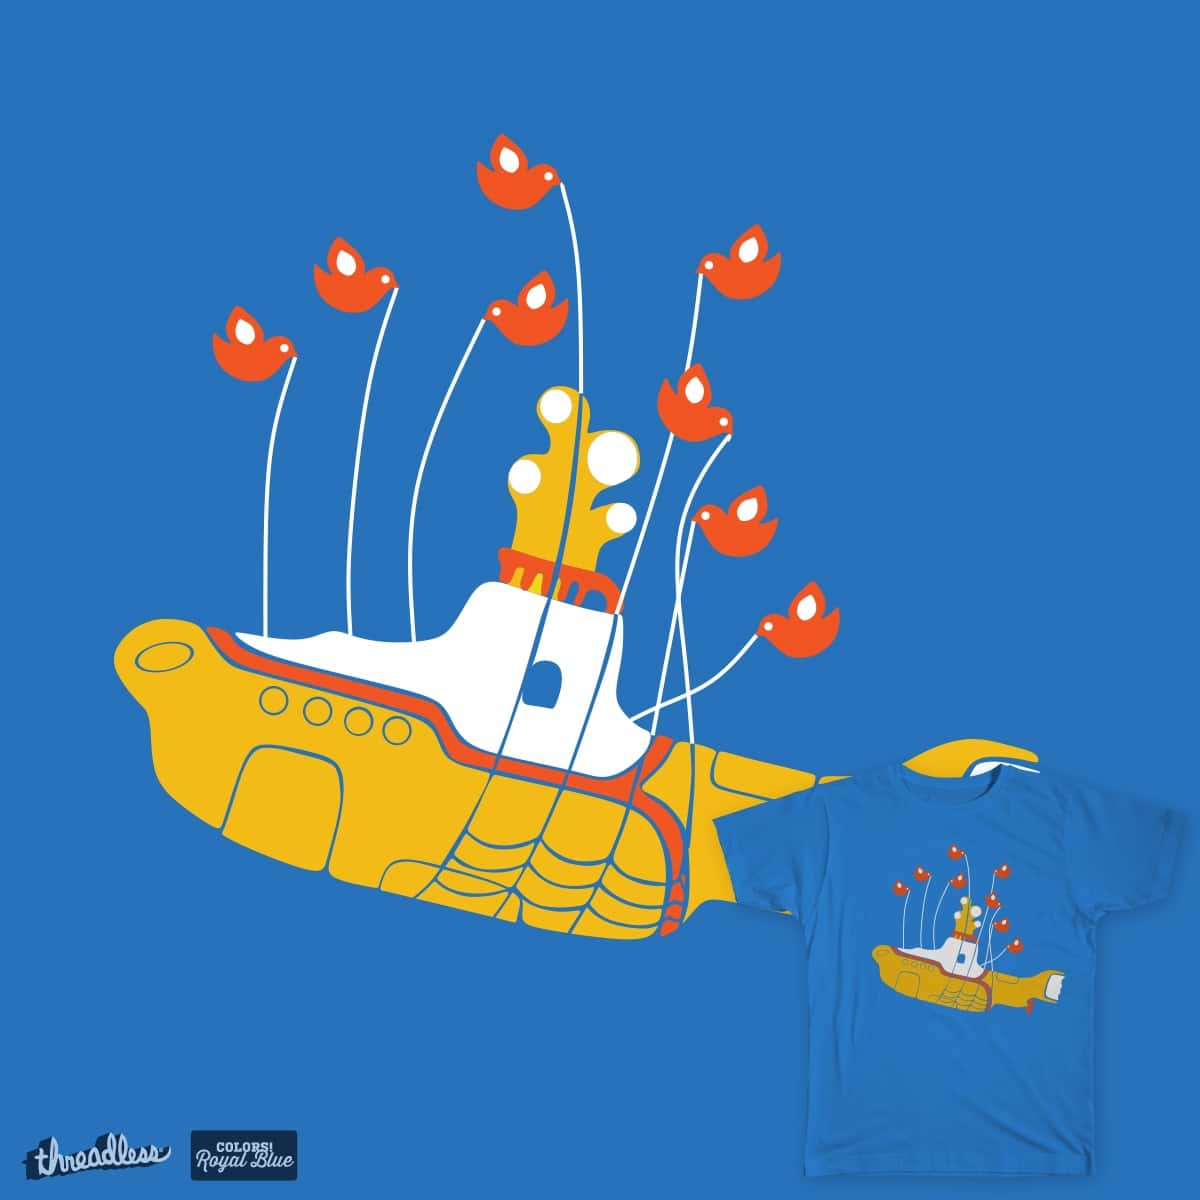 Submarine Capacity is Overloaded by voraxine on Threadless